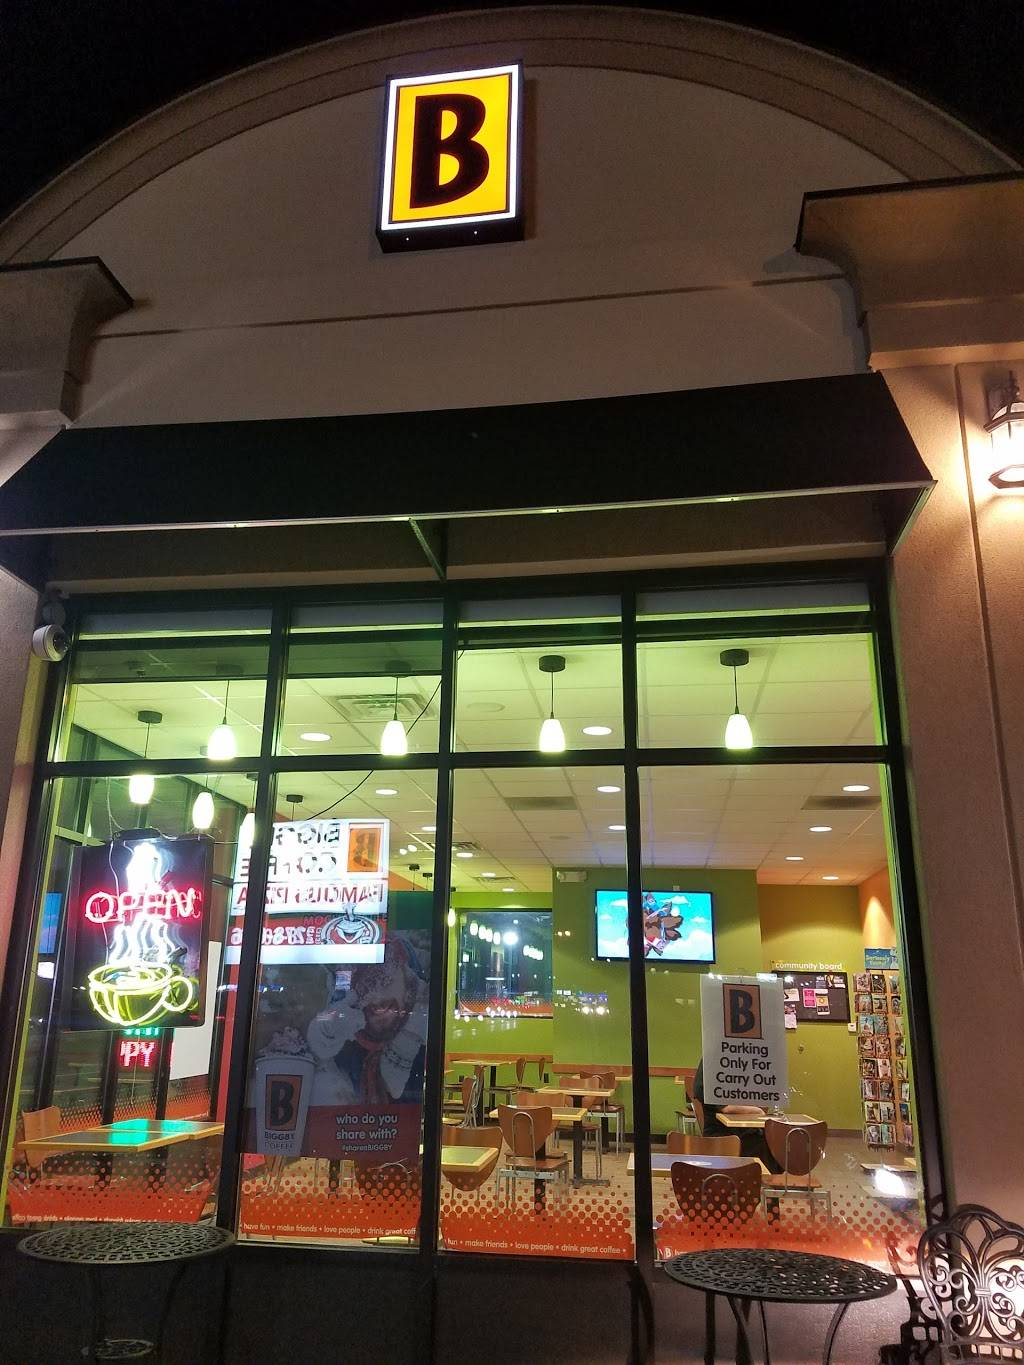 Biggby Coffee | cafe | 25421 Ford Rd, Dearborn Heights, MI 48127, USA | 3137685570 OR +1 313-768-5570